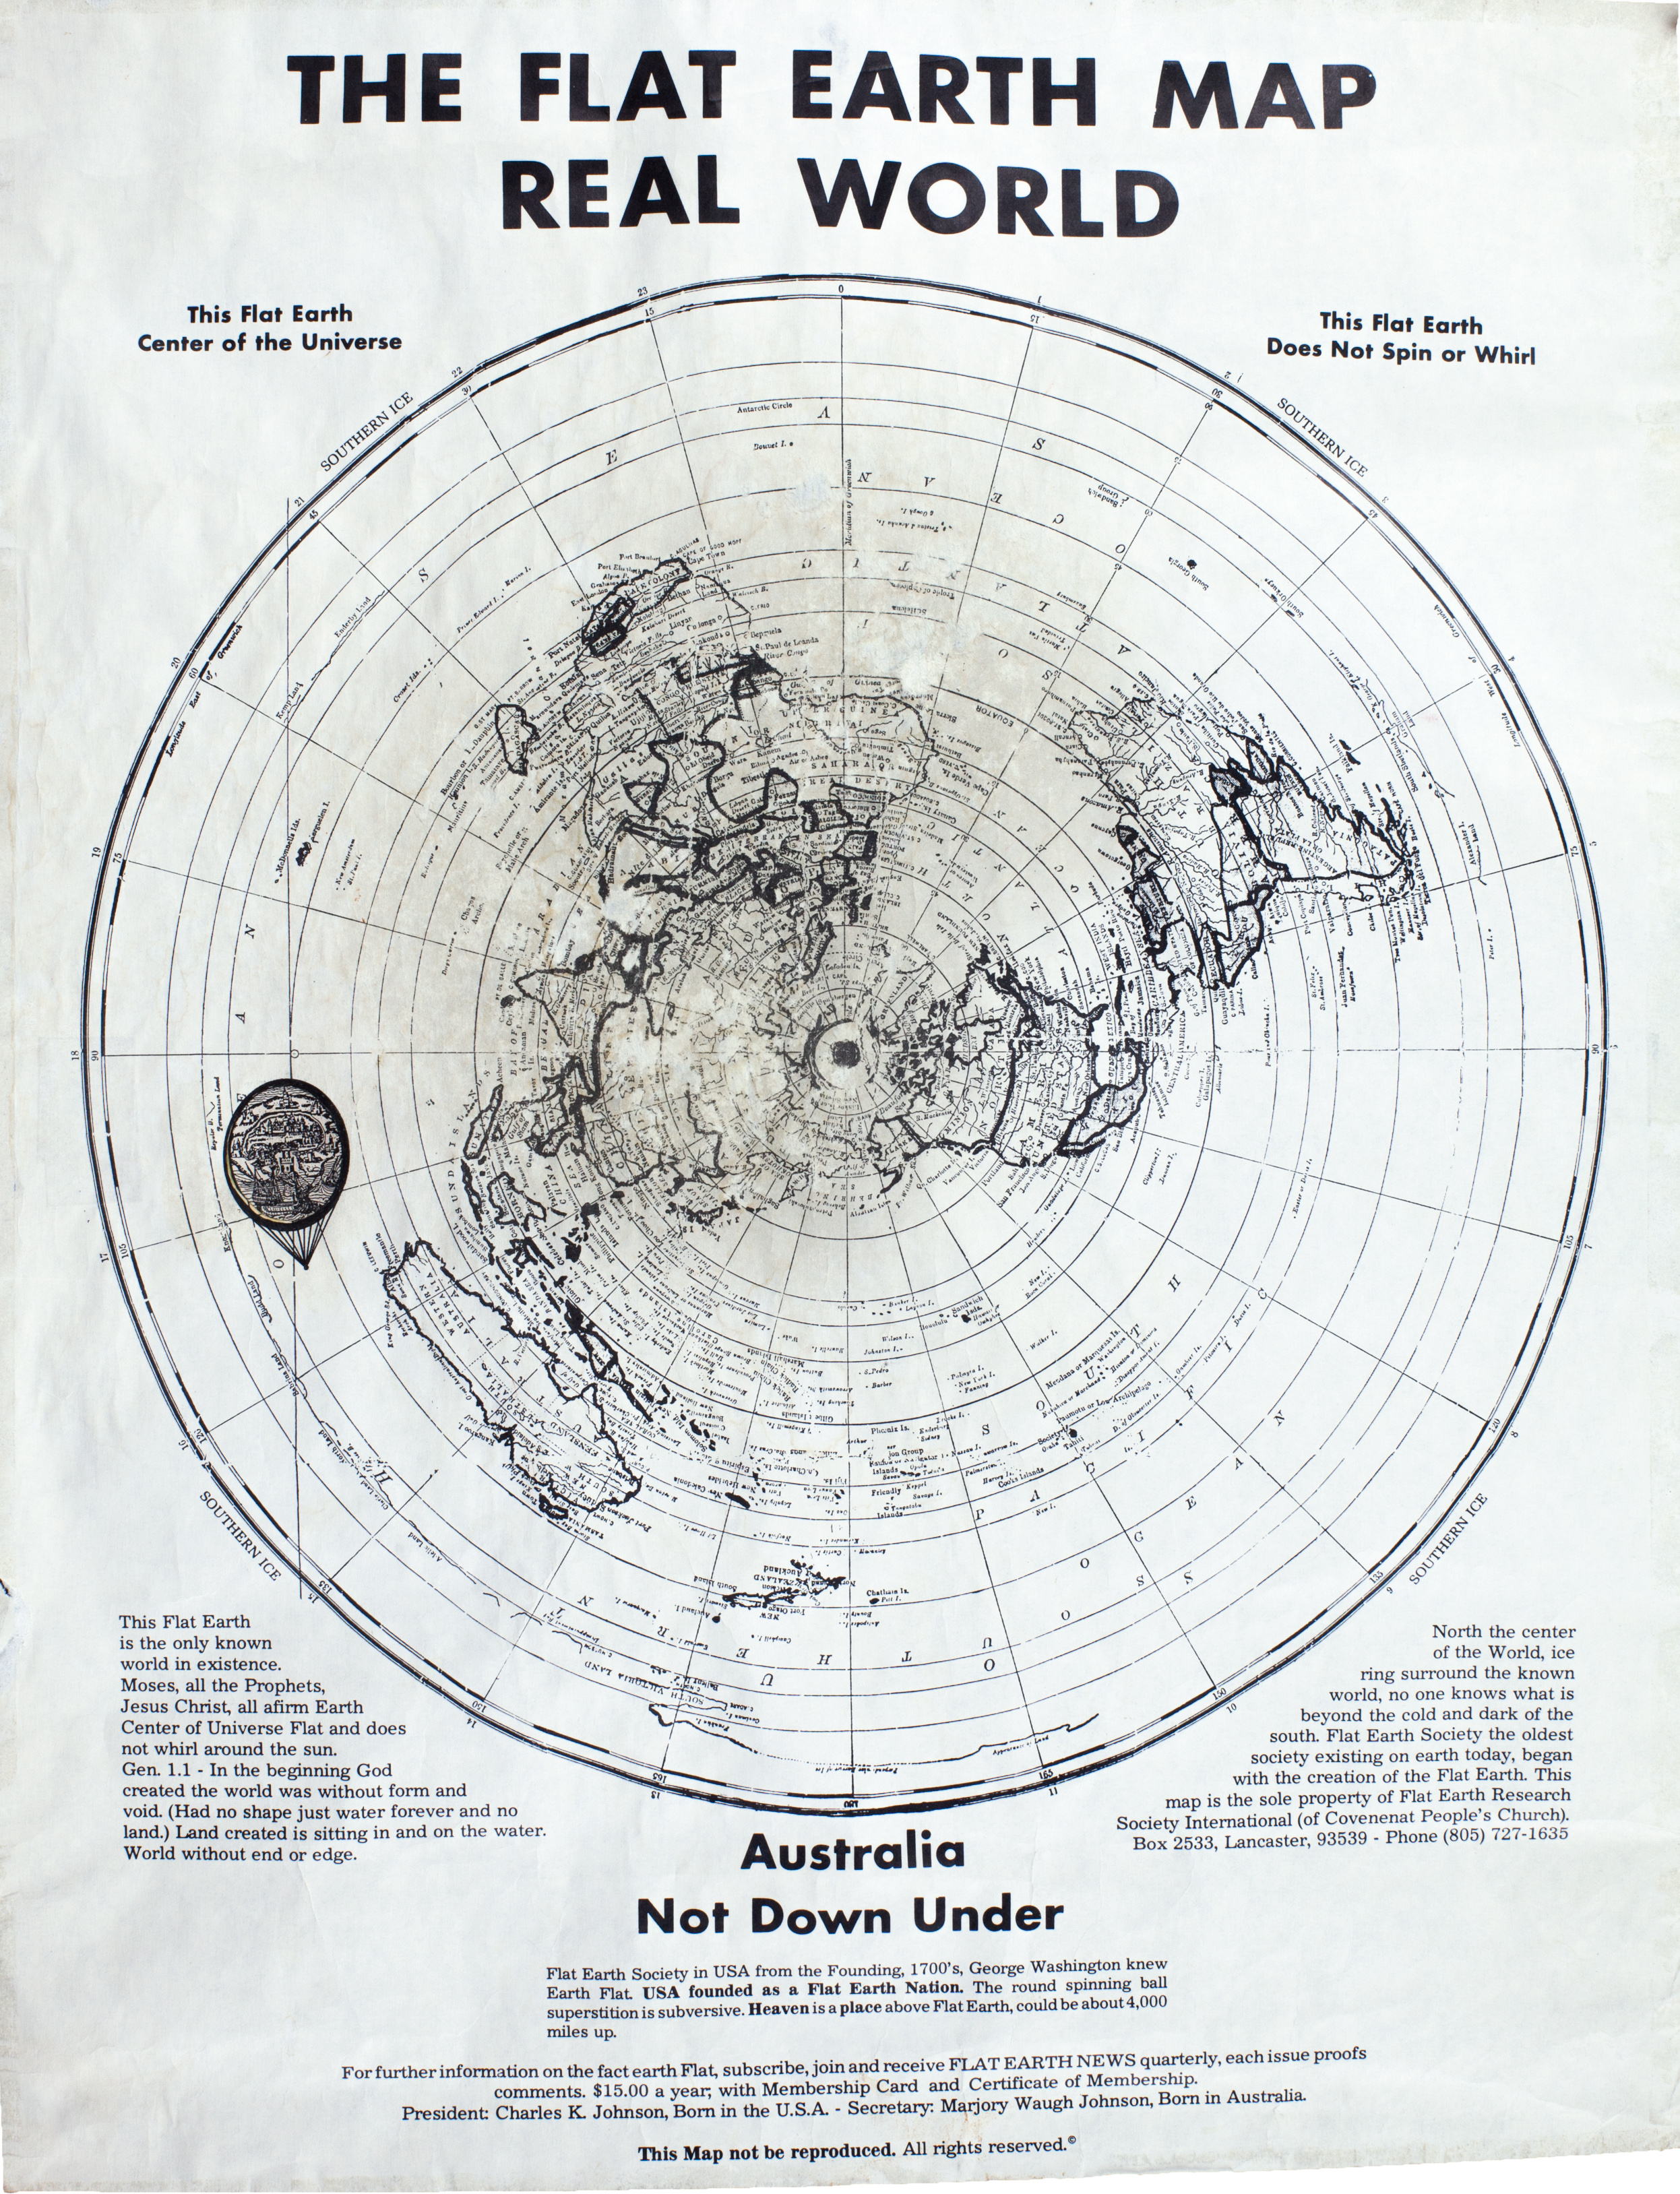 01 Flat Earth Society Map (Charles K. Johnson)